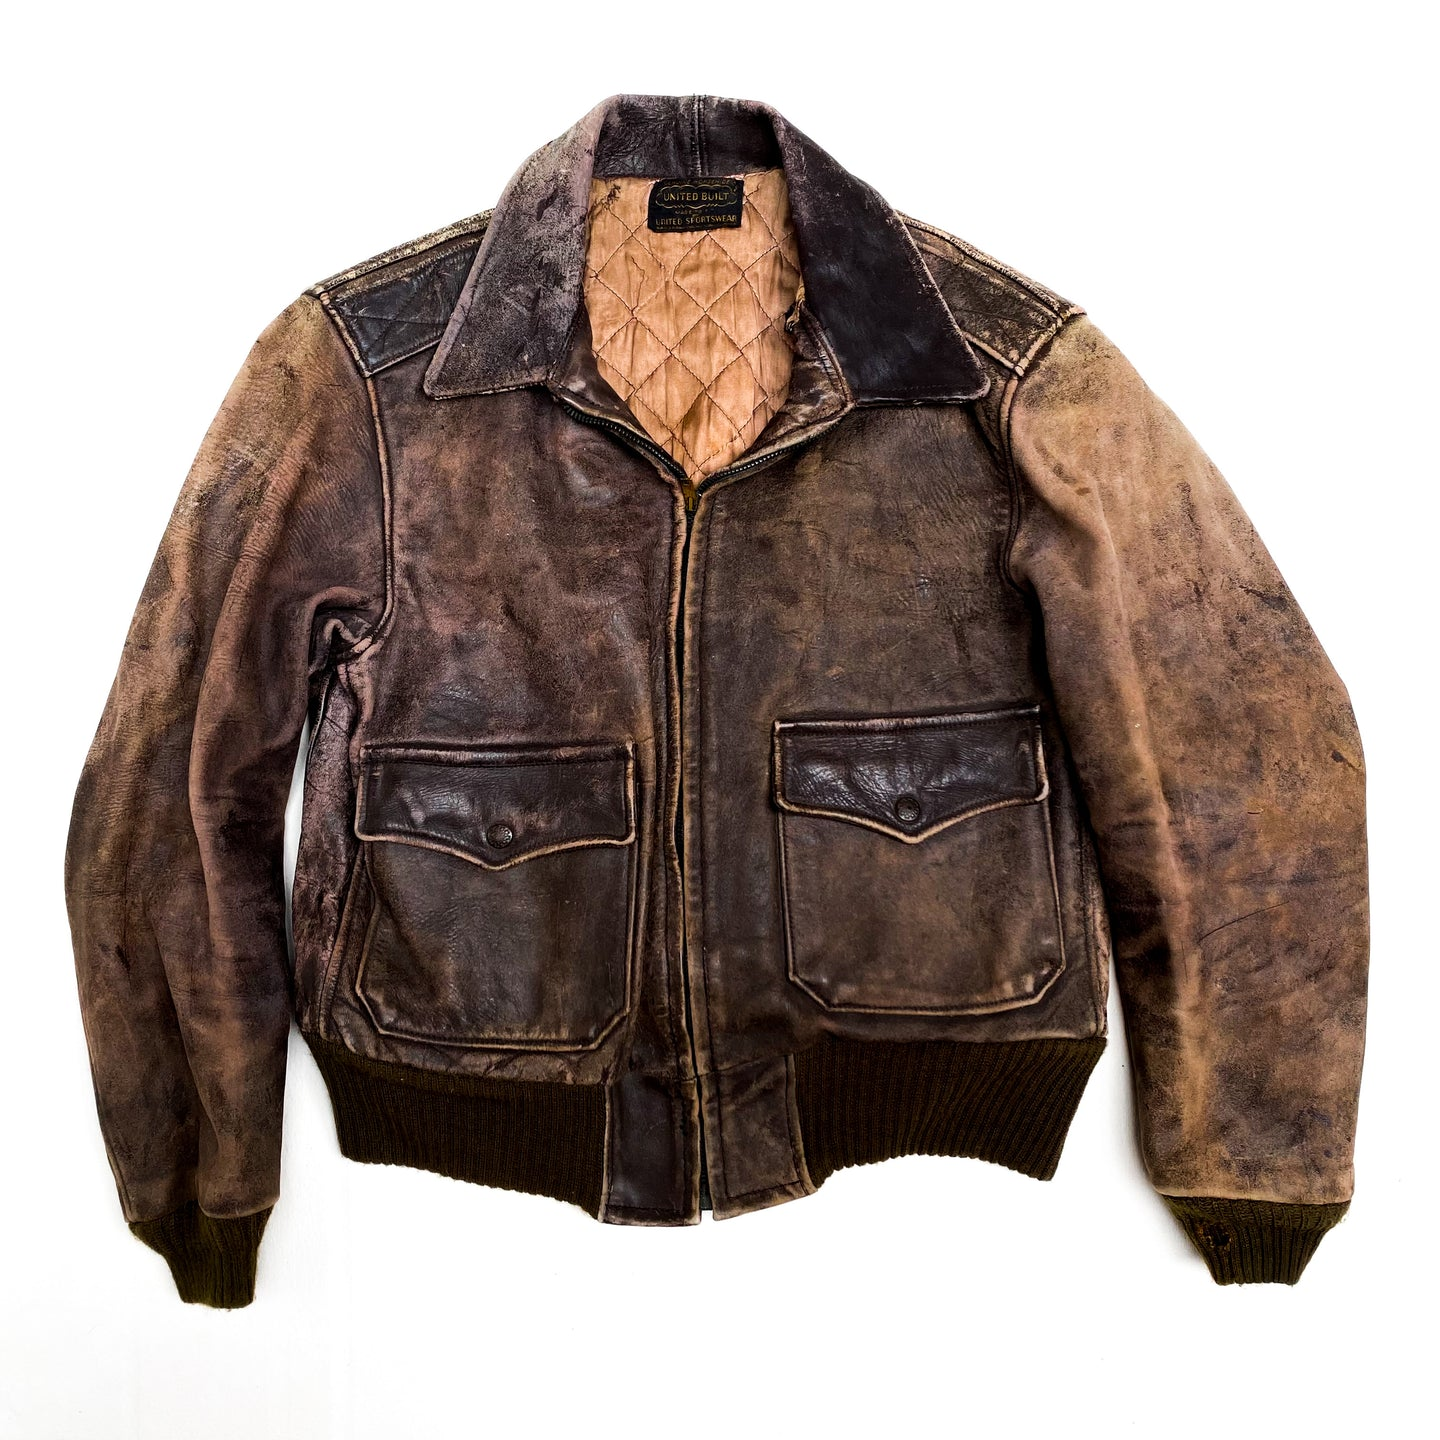 1960s United Built Brown Leather Bomber